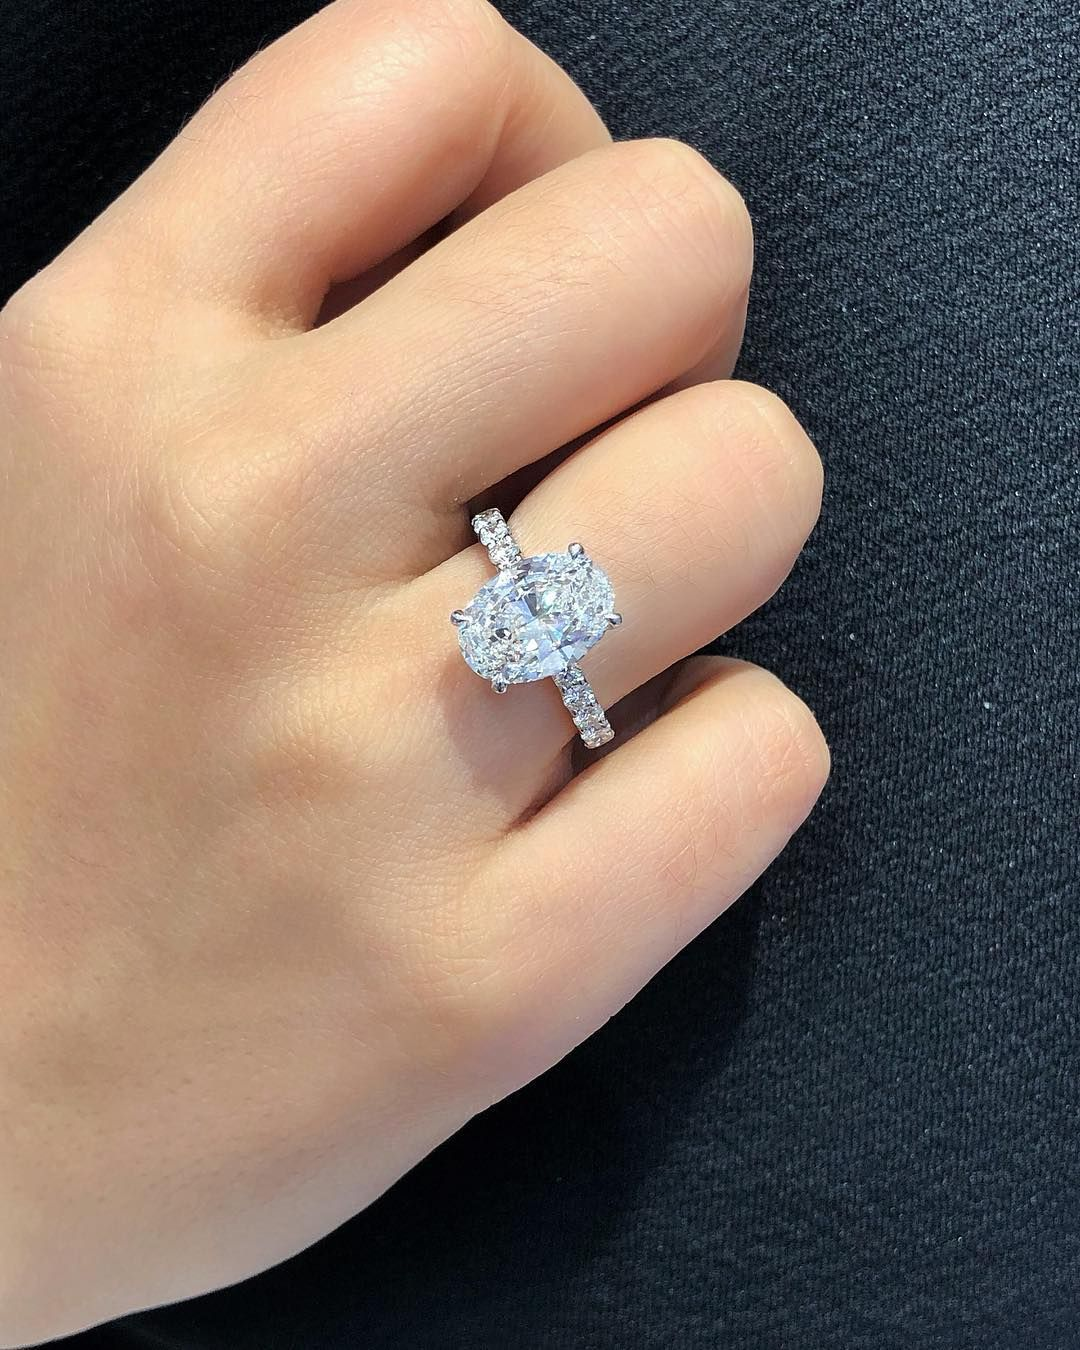 Oval Diamonds Have Become One Of The Most Popular Diamond Shapes Of 2018 But Do You Think It Will Reign In 2019 Custom Engagement Ring Diamond Oval Diamond